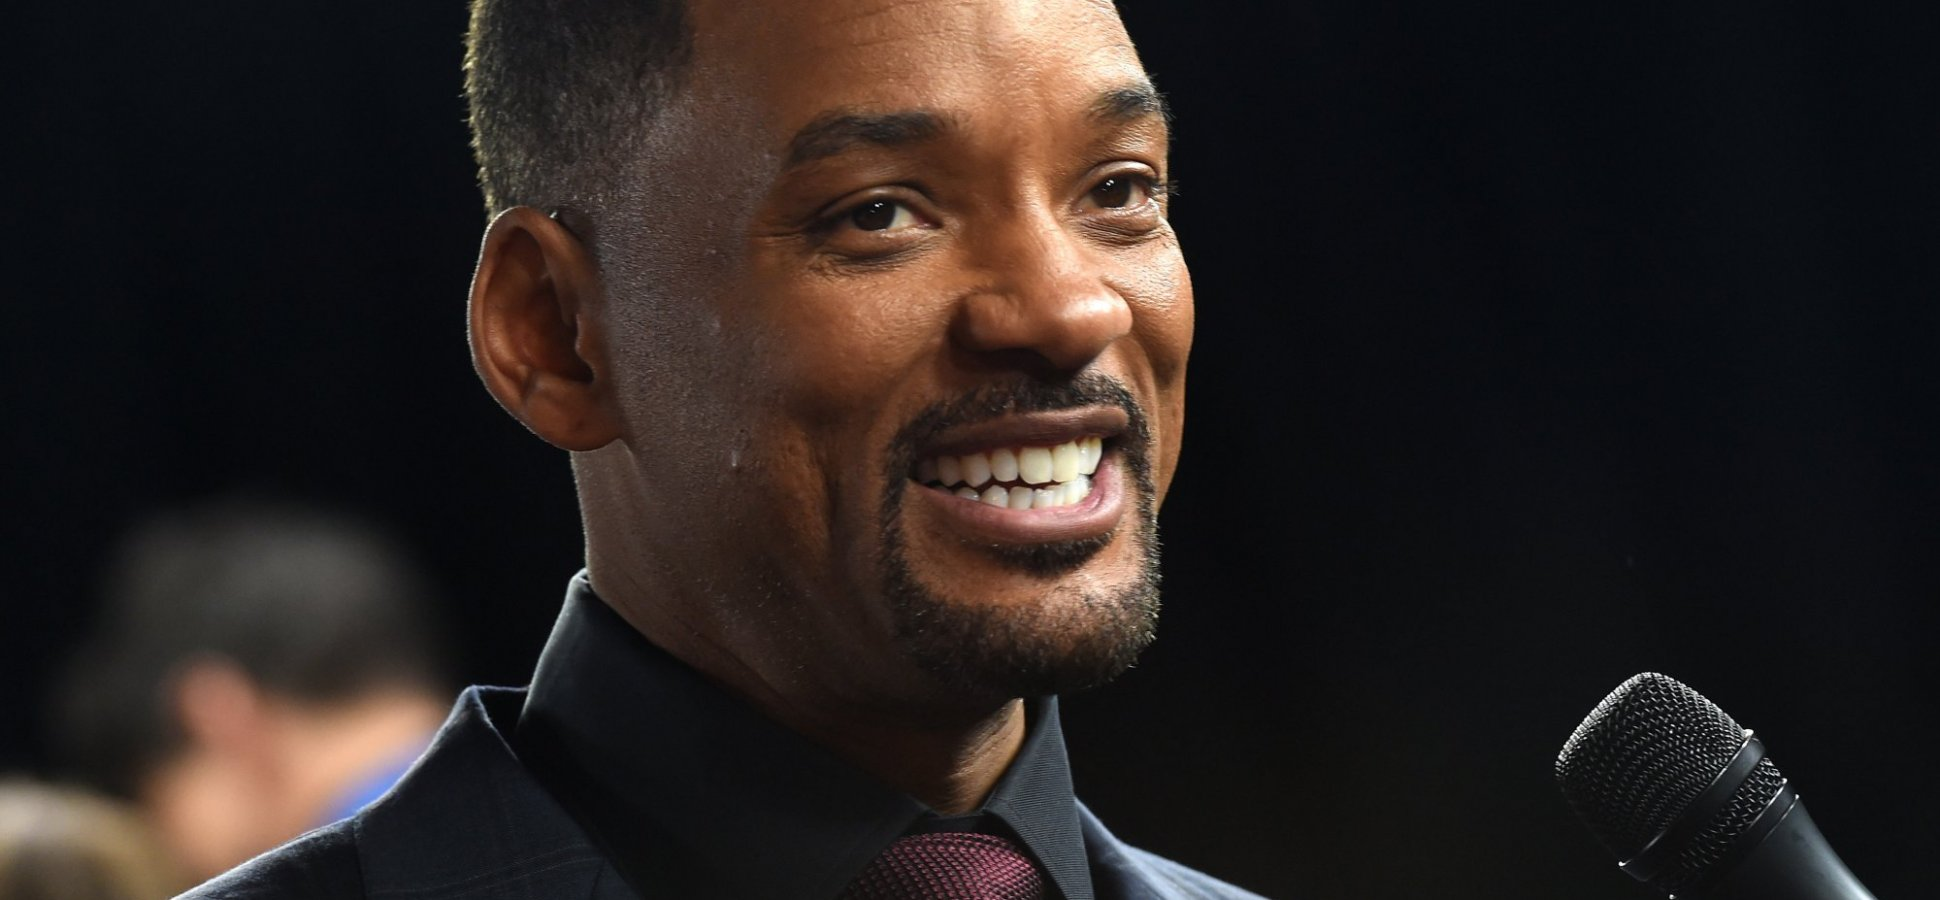 Here's How Will Smith, Michelle Obama, and Nike Earn the Attention and Loyalty of Fans and Customers